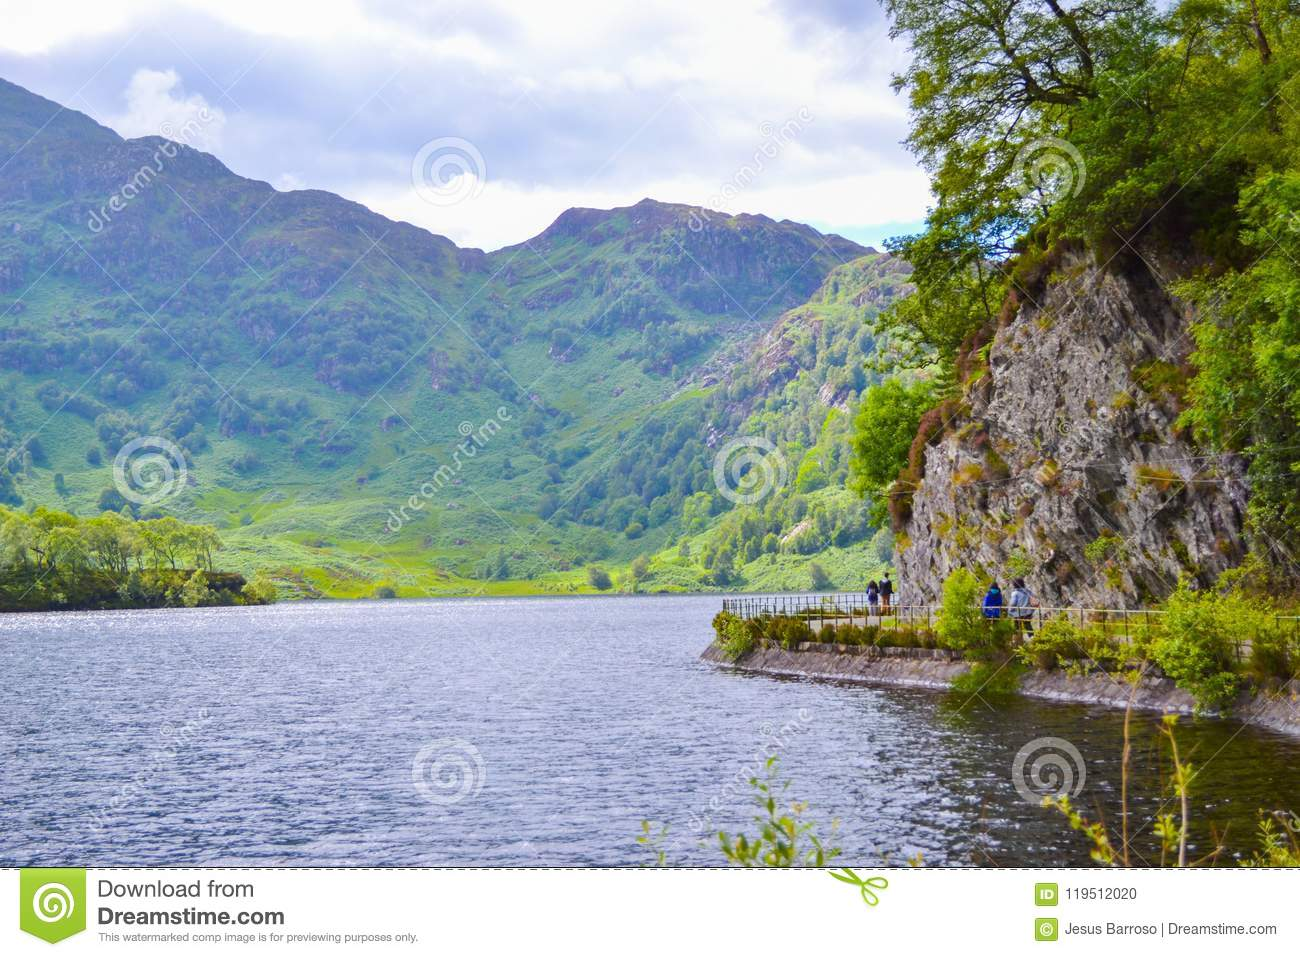 Loch Katrine Katrine Lake in Highlands, Scotland. Beautiful lake in middle of nature and mountains